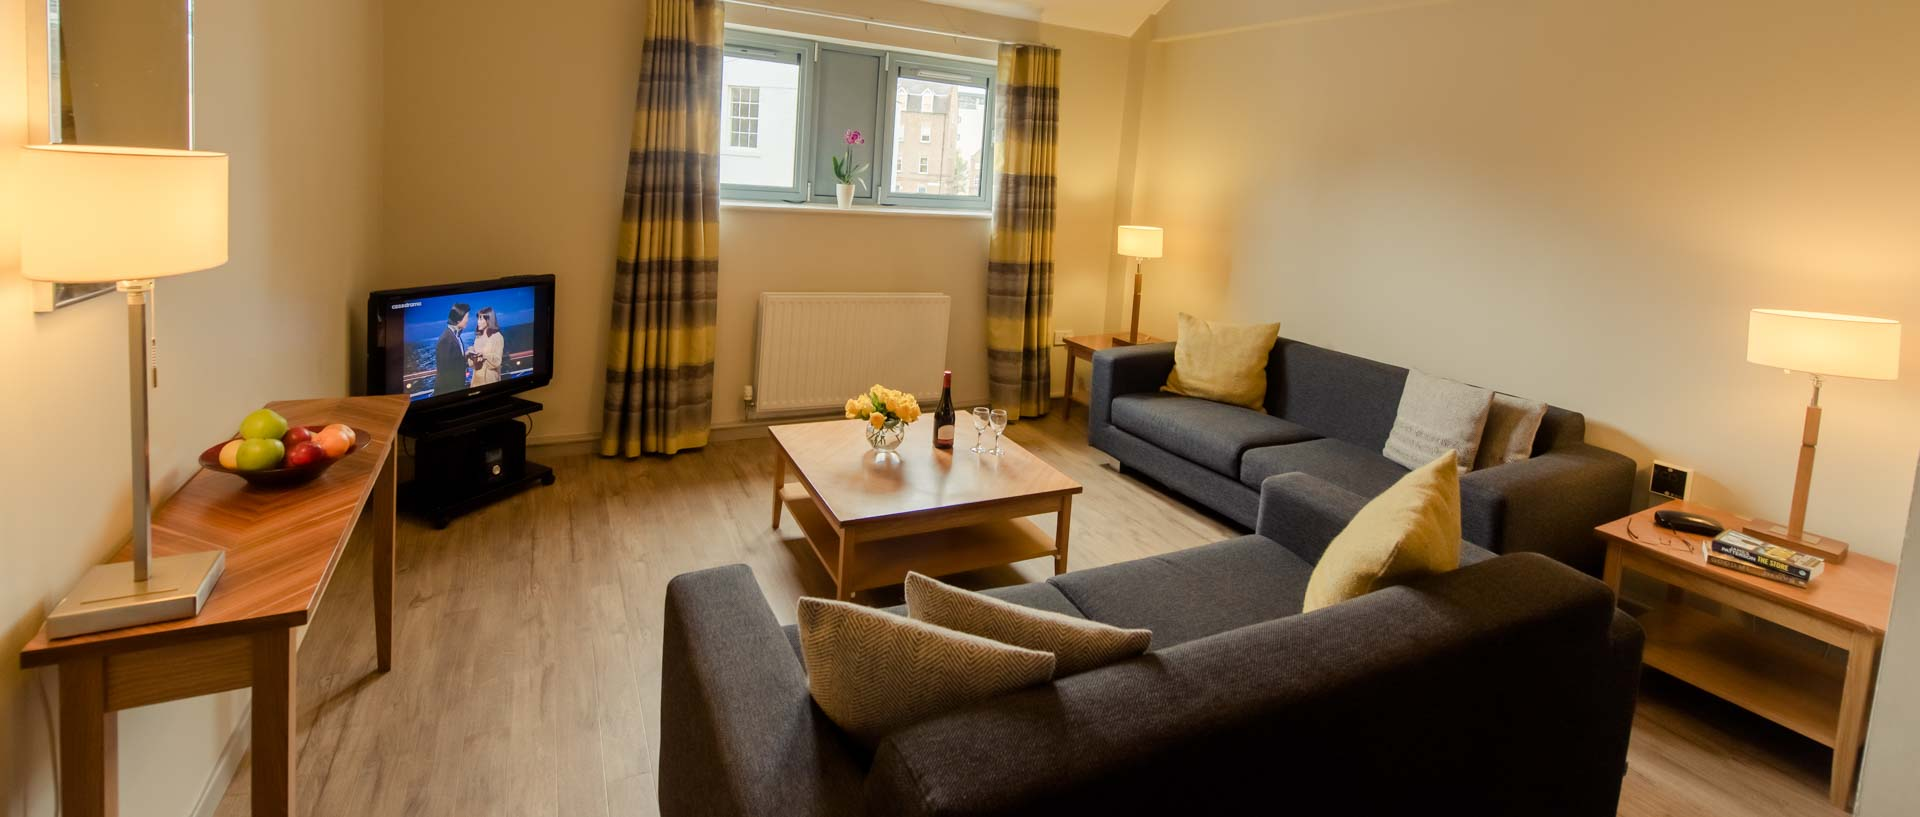 PREMIER SUITES Newcastle sitting area in our serviced apartments